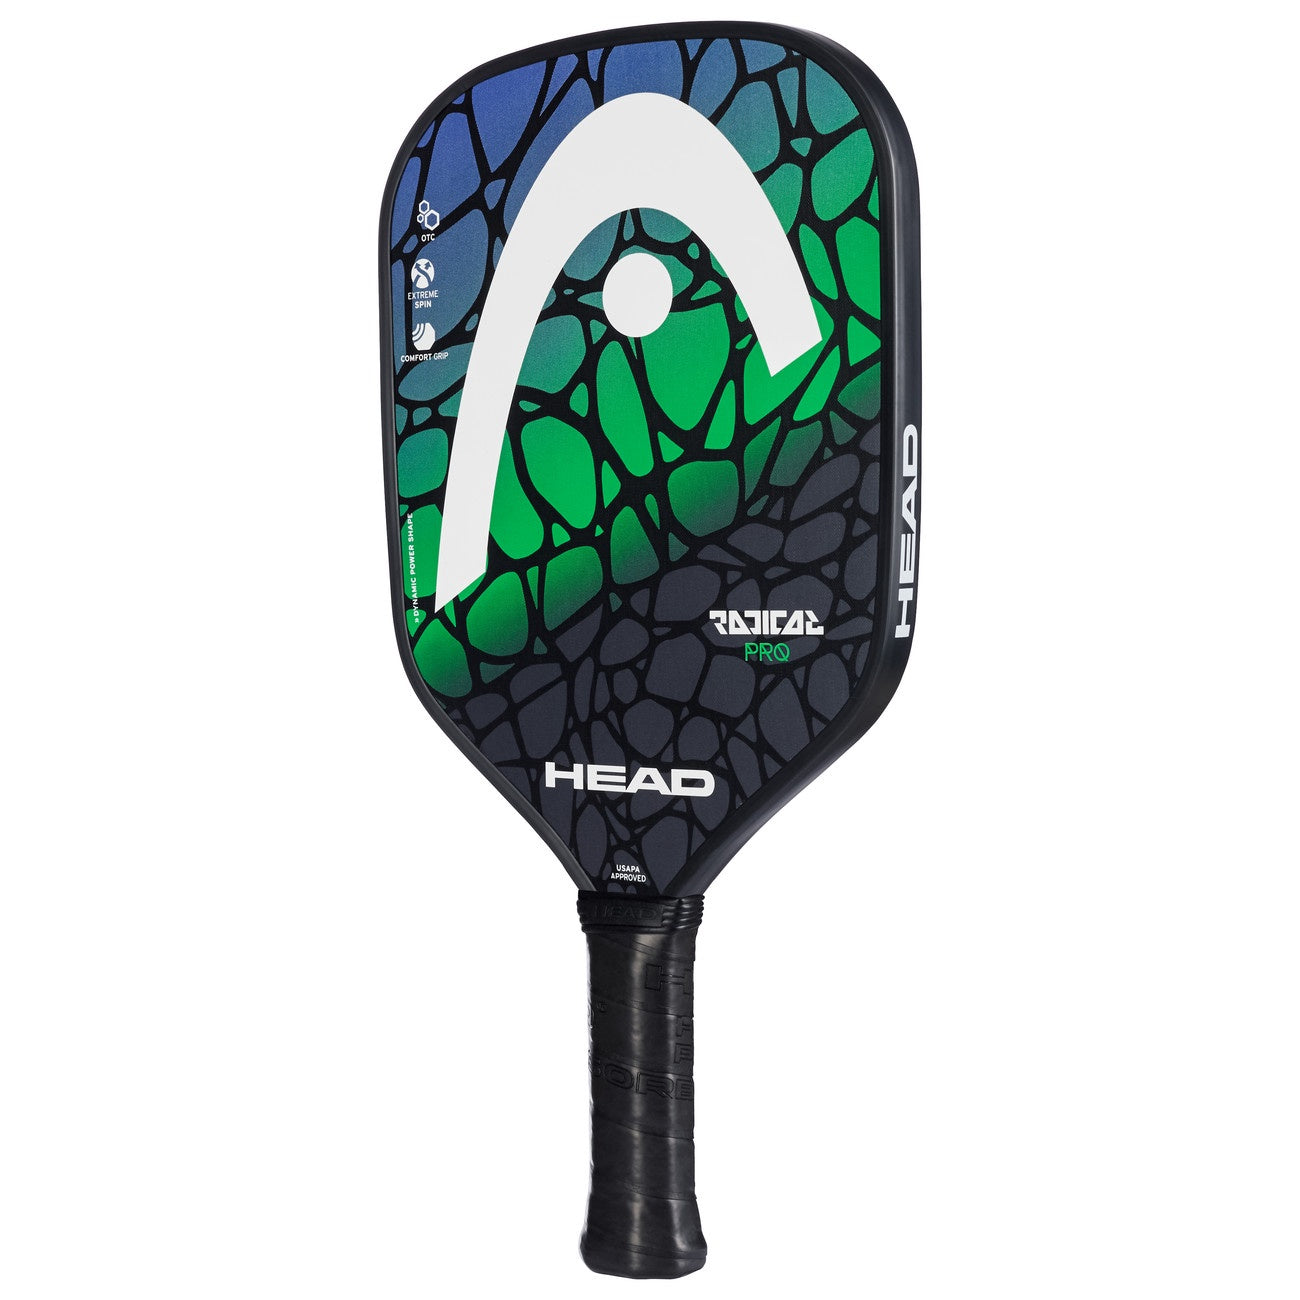 Head 2019 Radical Pro Pickleball Racquet